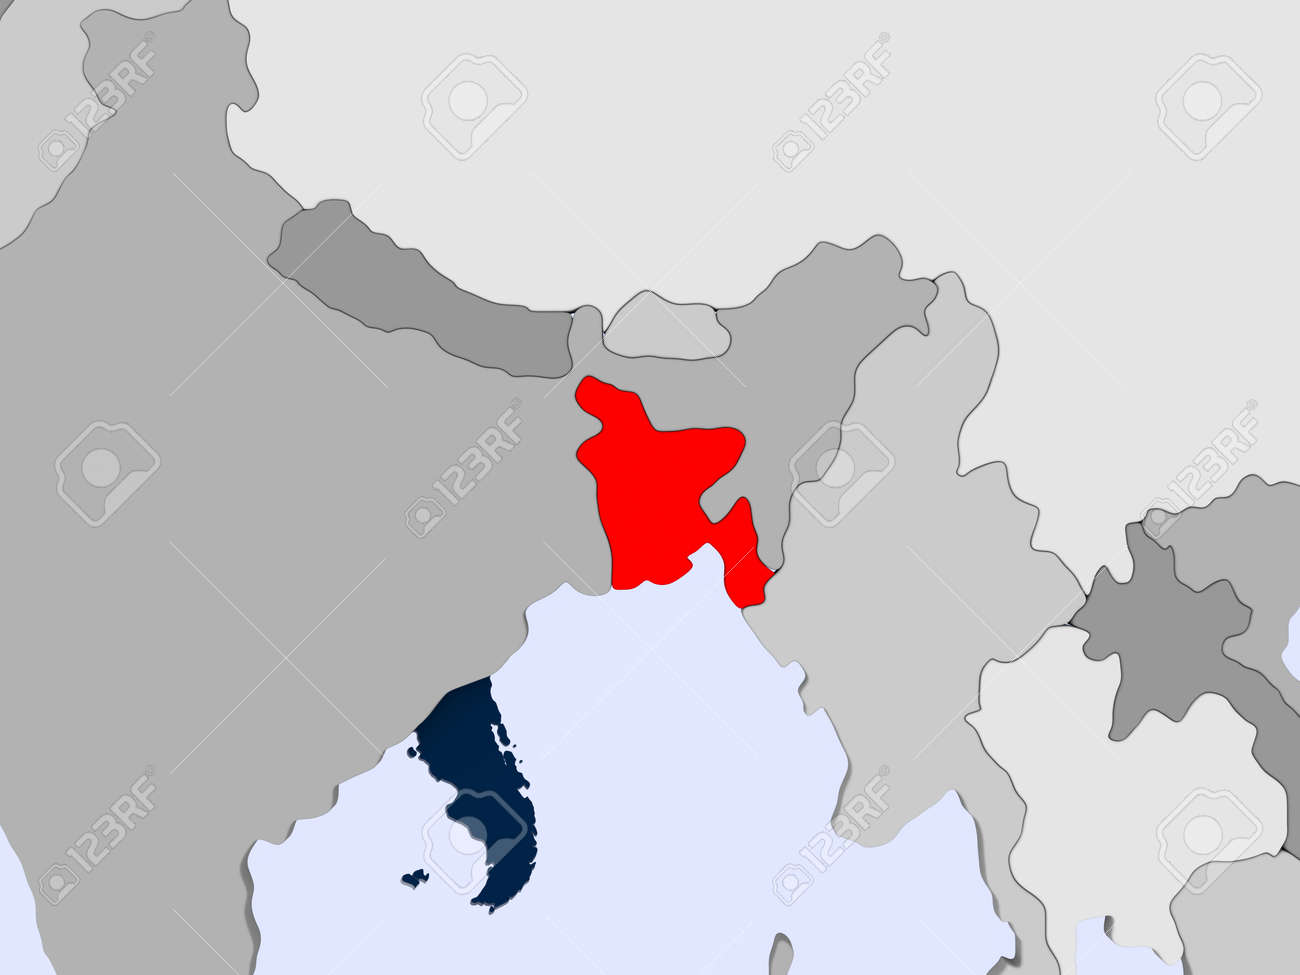 Bangladesh In Red On Political Map With Transparent Oceans 3d